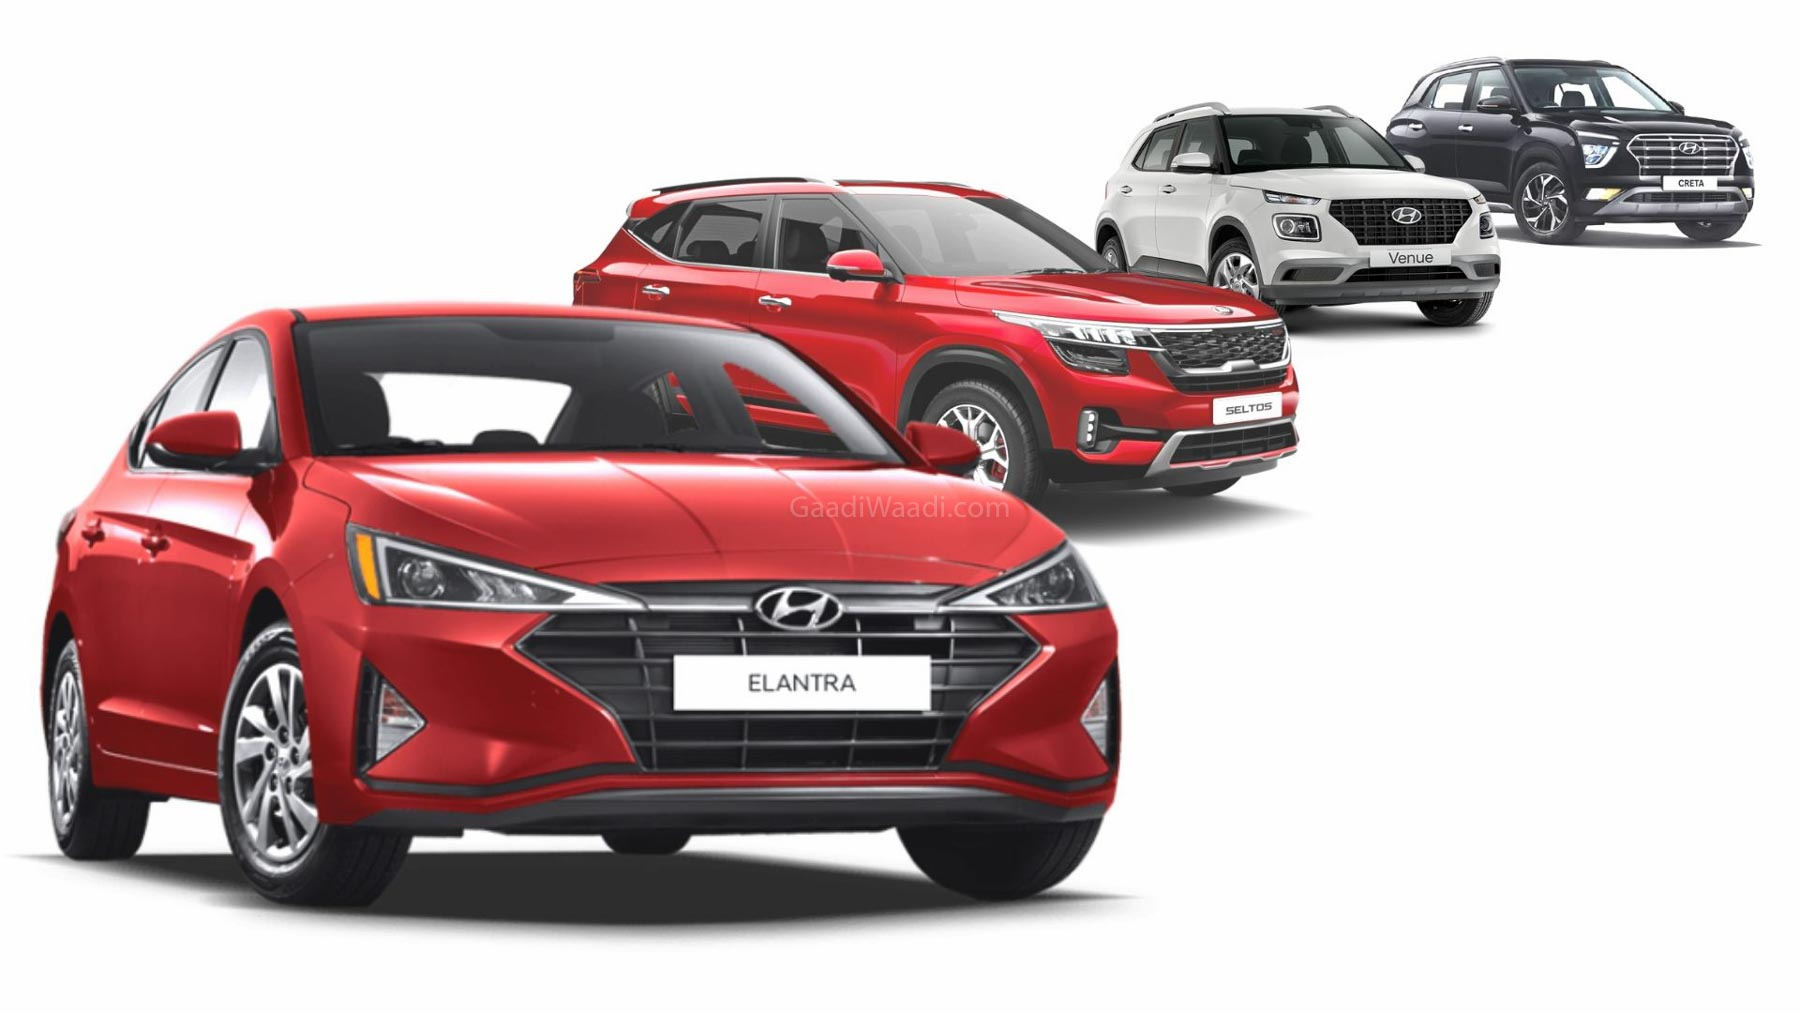 Hyundai Elantra Diesel BSVI Launched From Rs. 18.70 Lakh